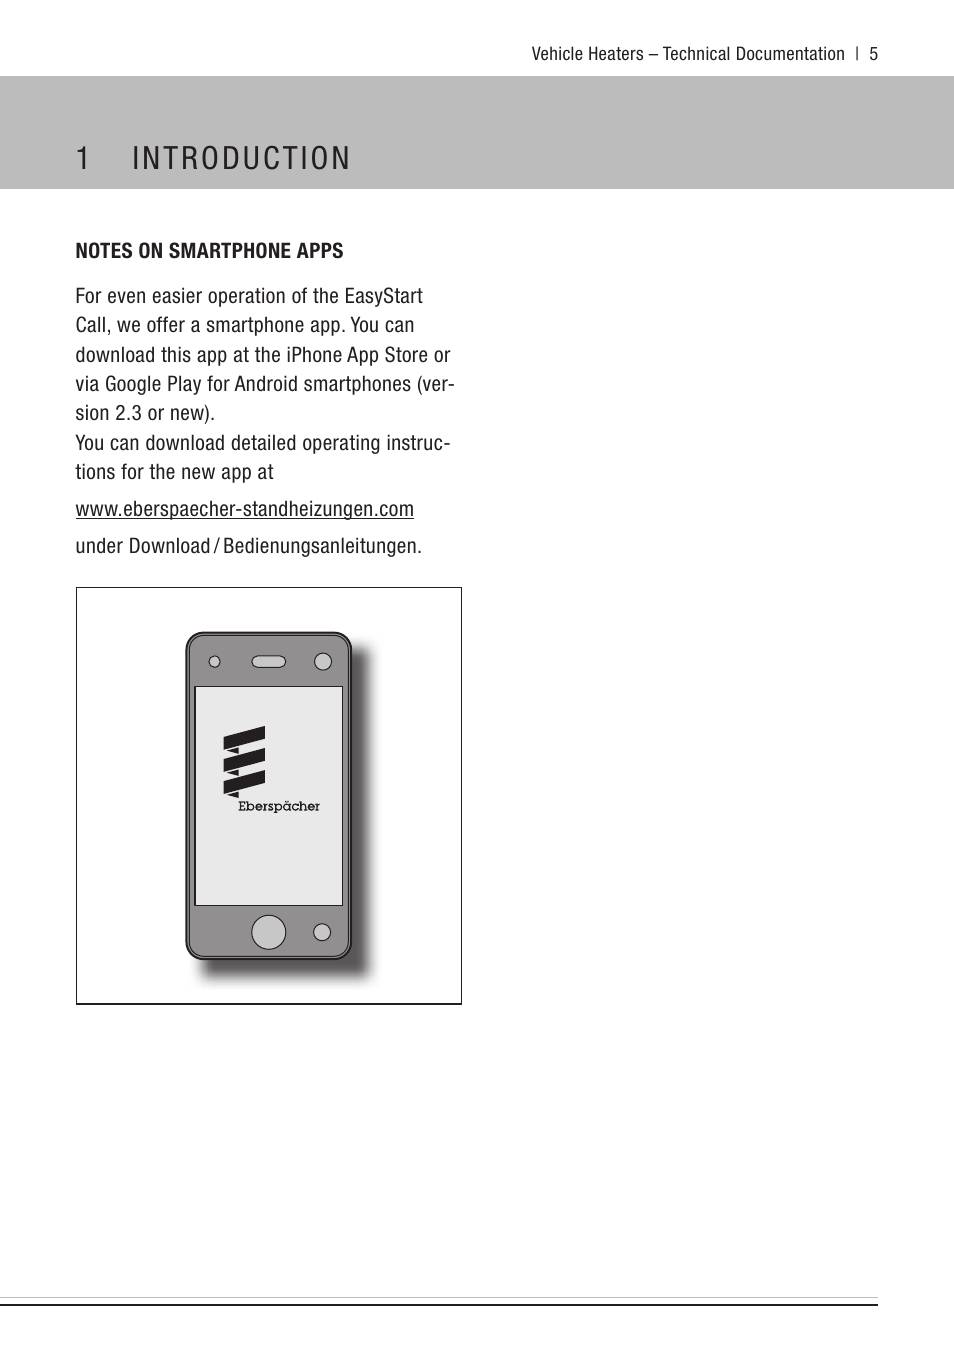 Notes on smartphone apps, 1 introduction | Eberspacher